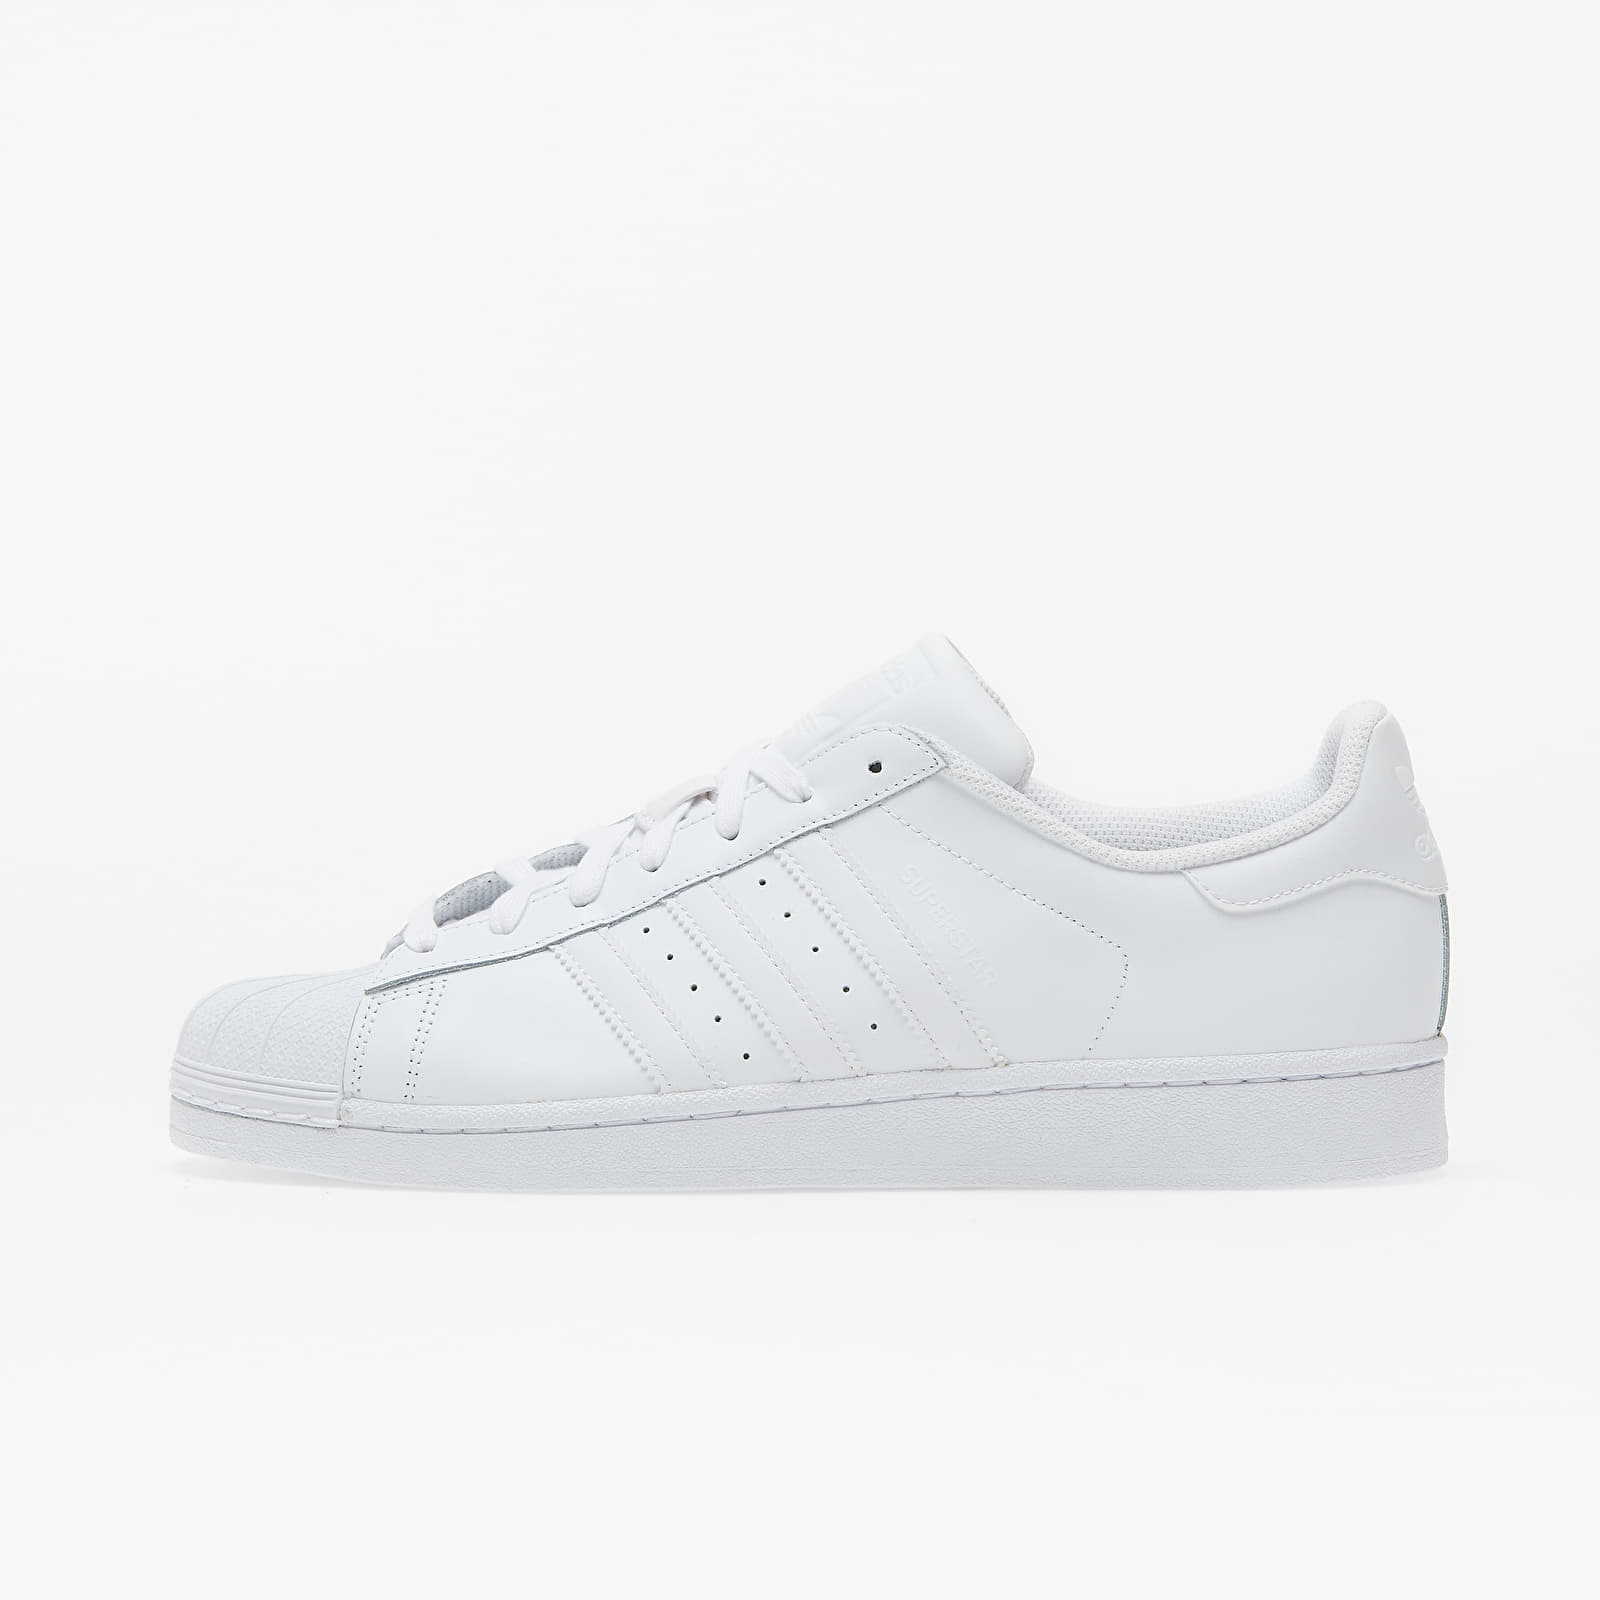 adidas Superstar Foundation Ftw White/ Ftw White/ Ftw White EUR 47 1/3